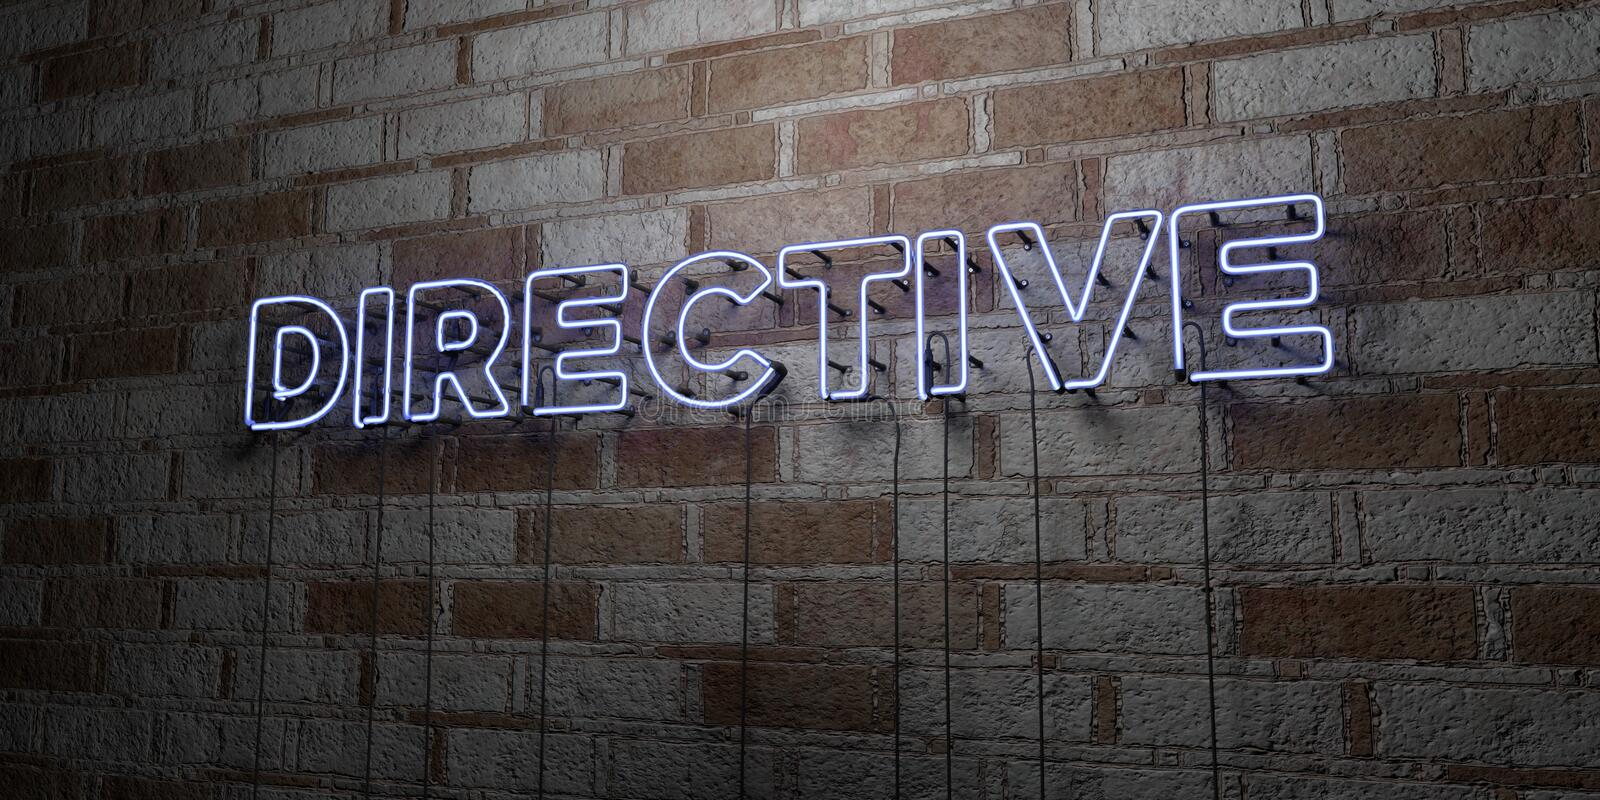 DIRECTIVE - Glowing Neon Sign on stonework wall - 3D rendered royalty free stock illustration. Can be used for online banner ads and direct mailers vector illustration